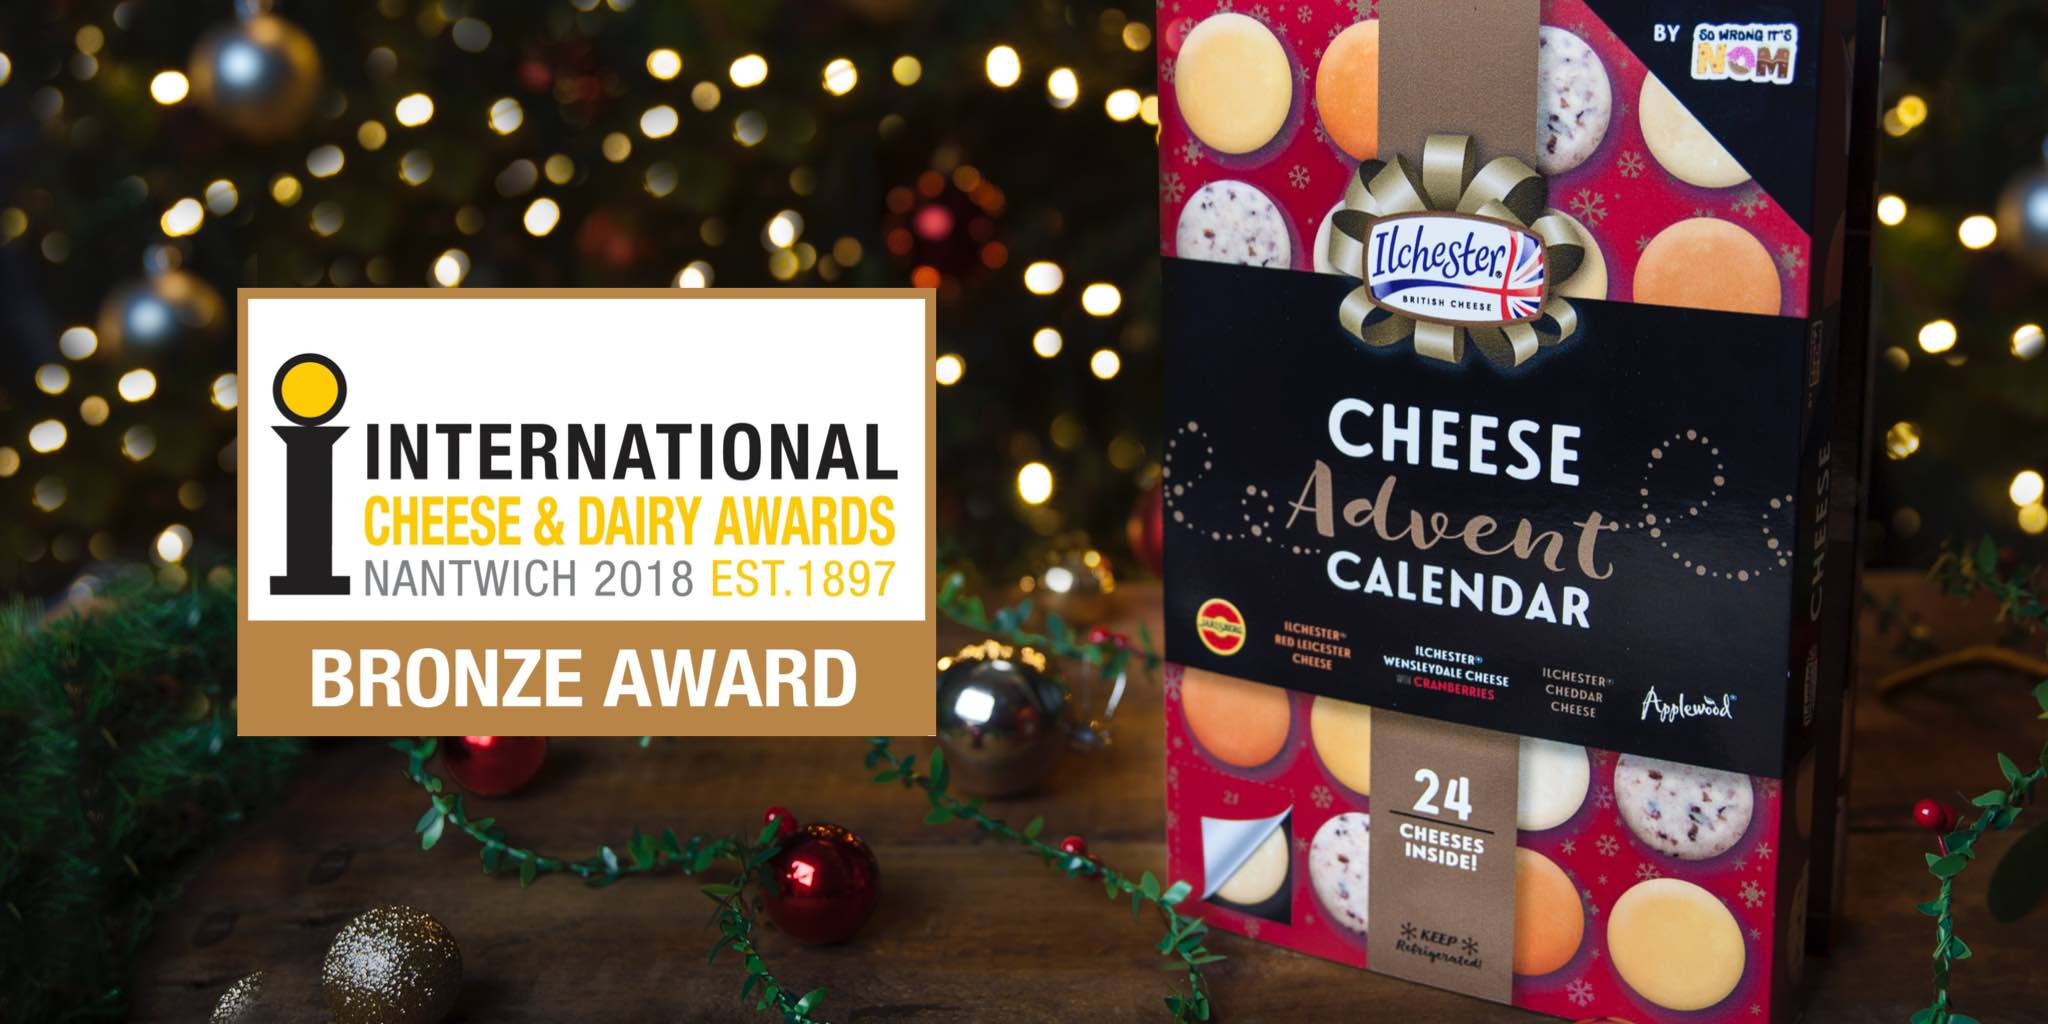 Cheese Advent Calendar wins at the International Cheese Awards